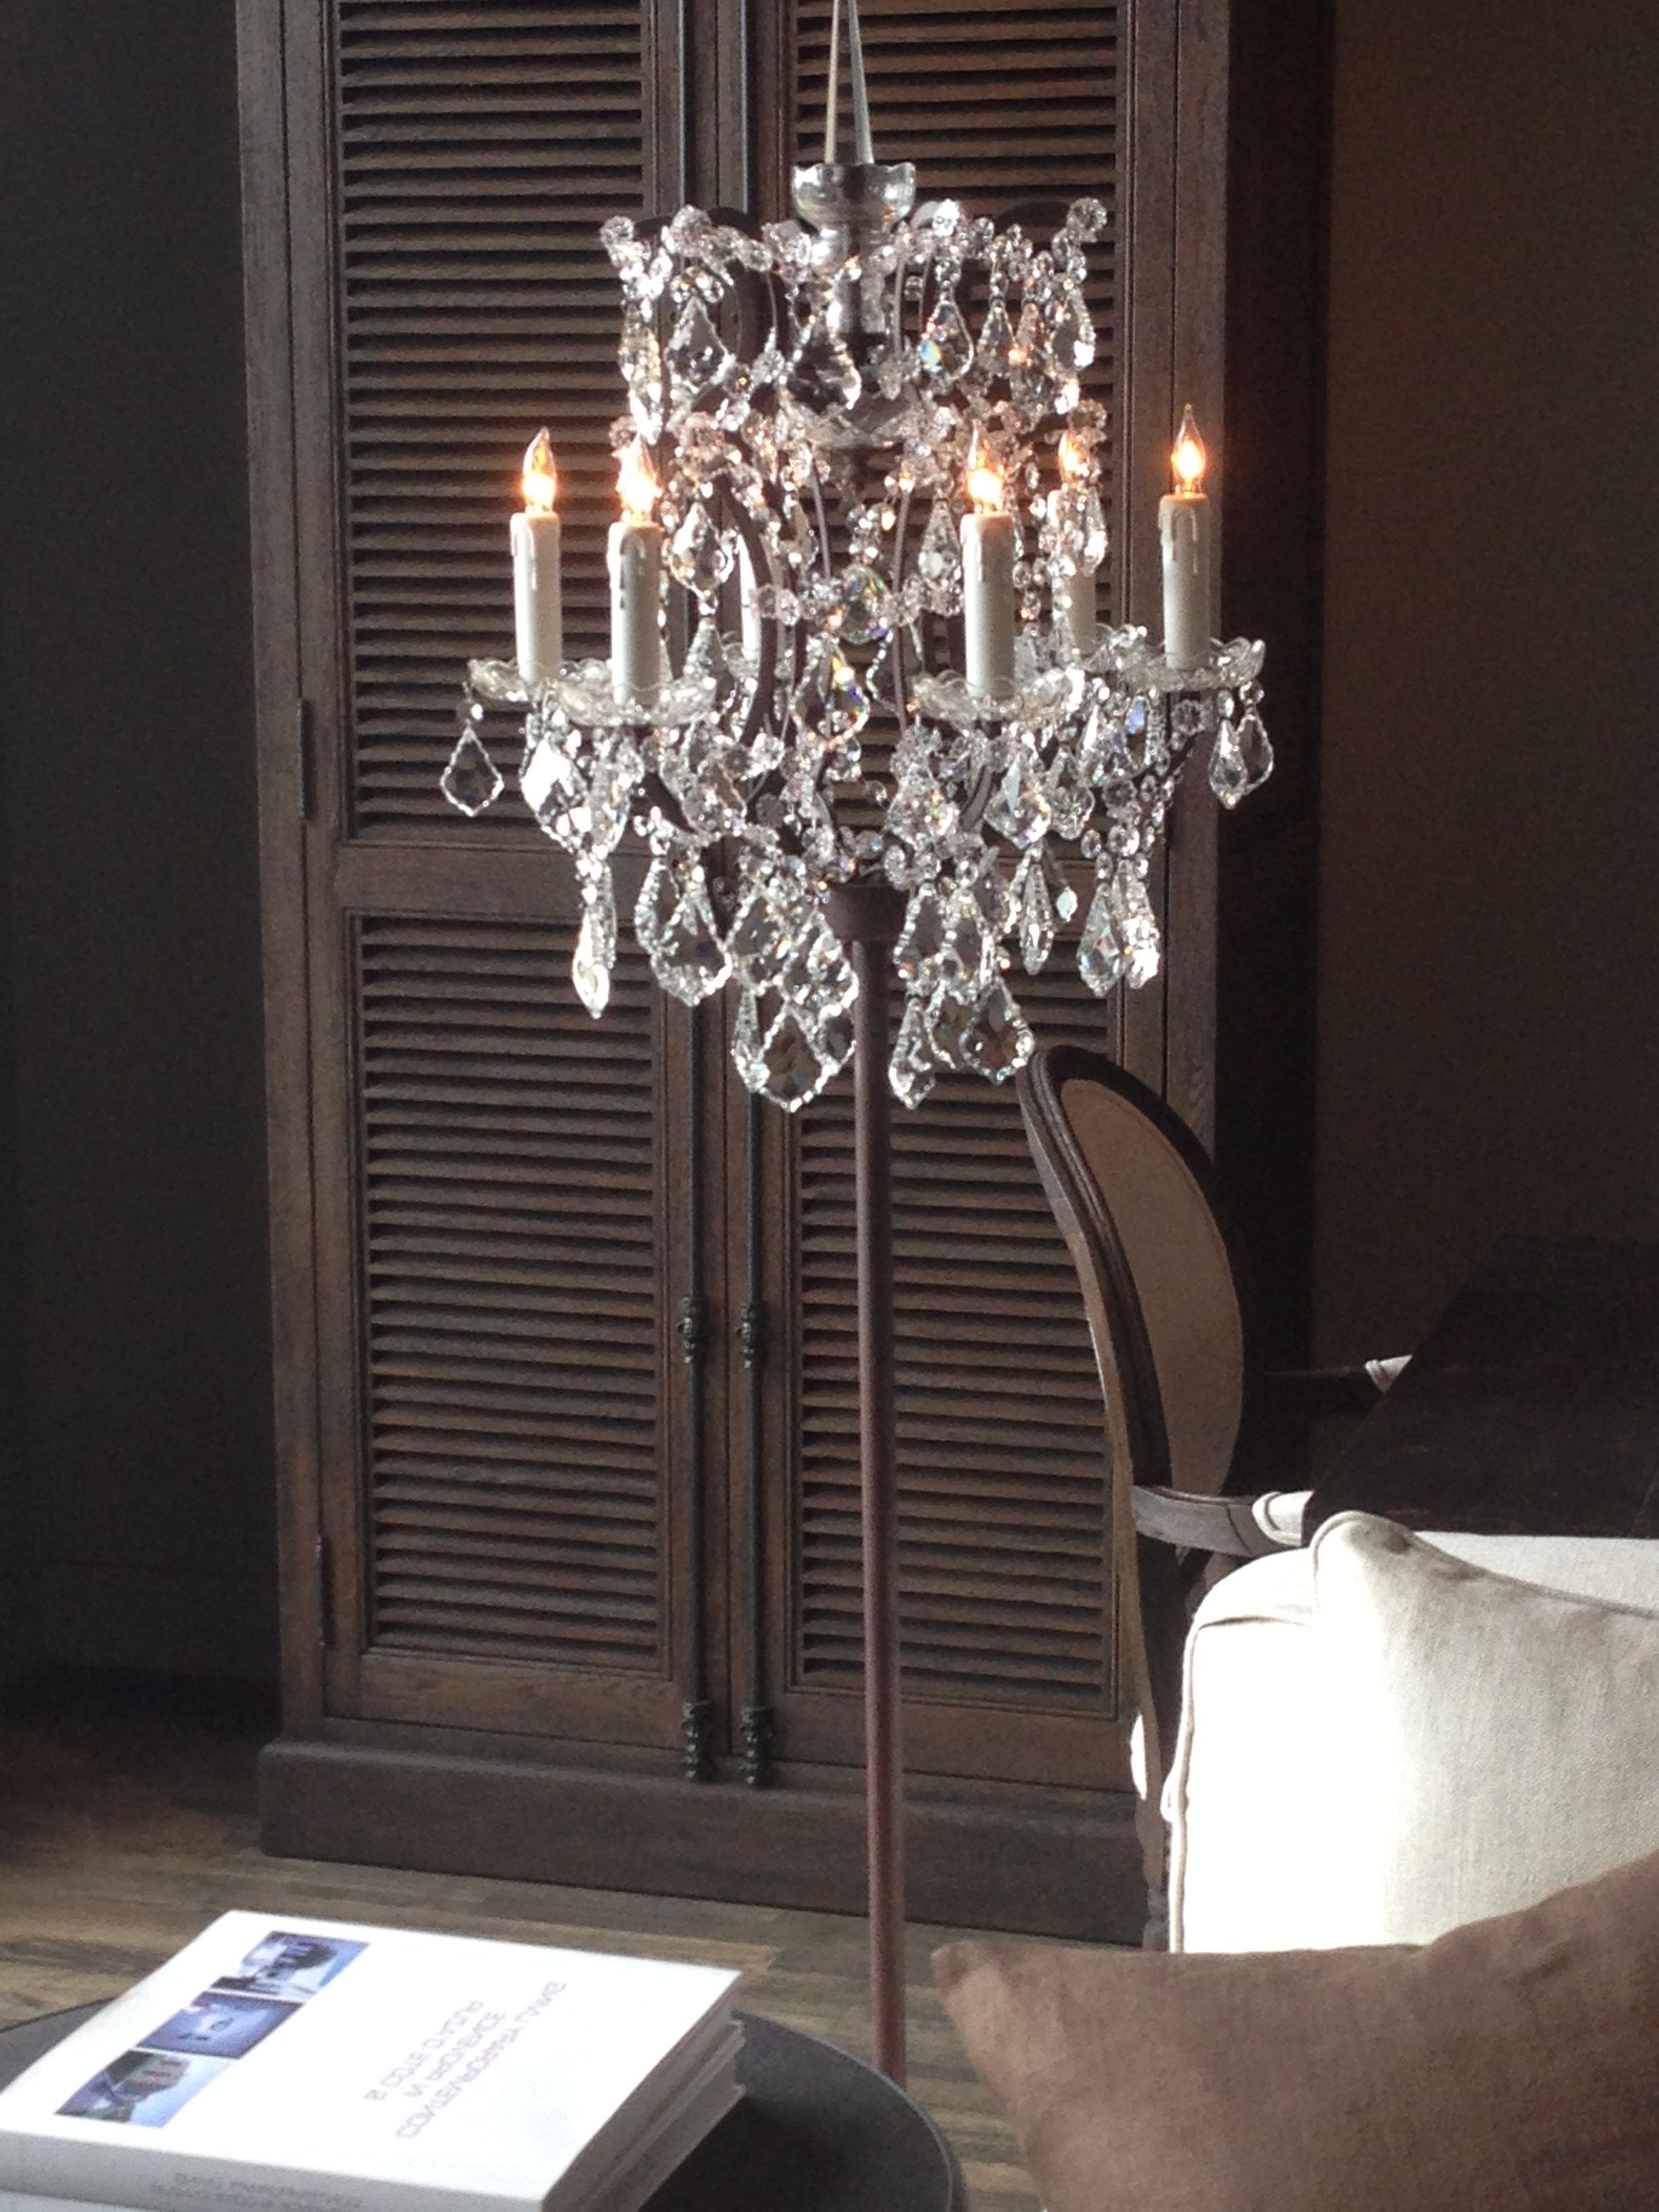 Widely Used Tall Standing Chandelier Lamps Within Chandelier Floor Lamp; I Own This Floor Lamp And It Is So Beautiful (View 9 of 20)